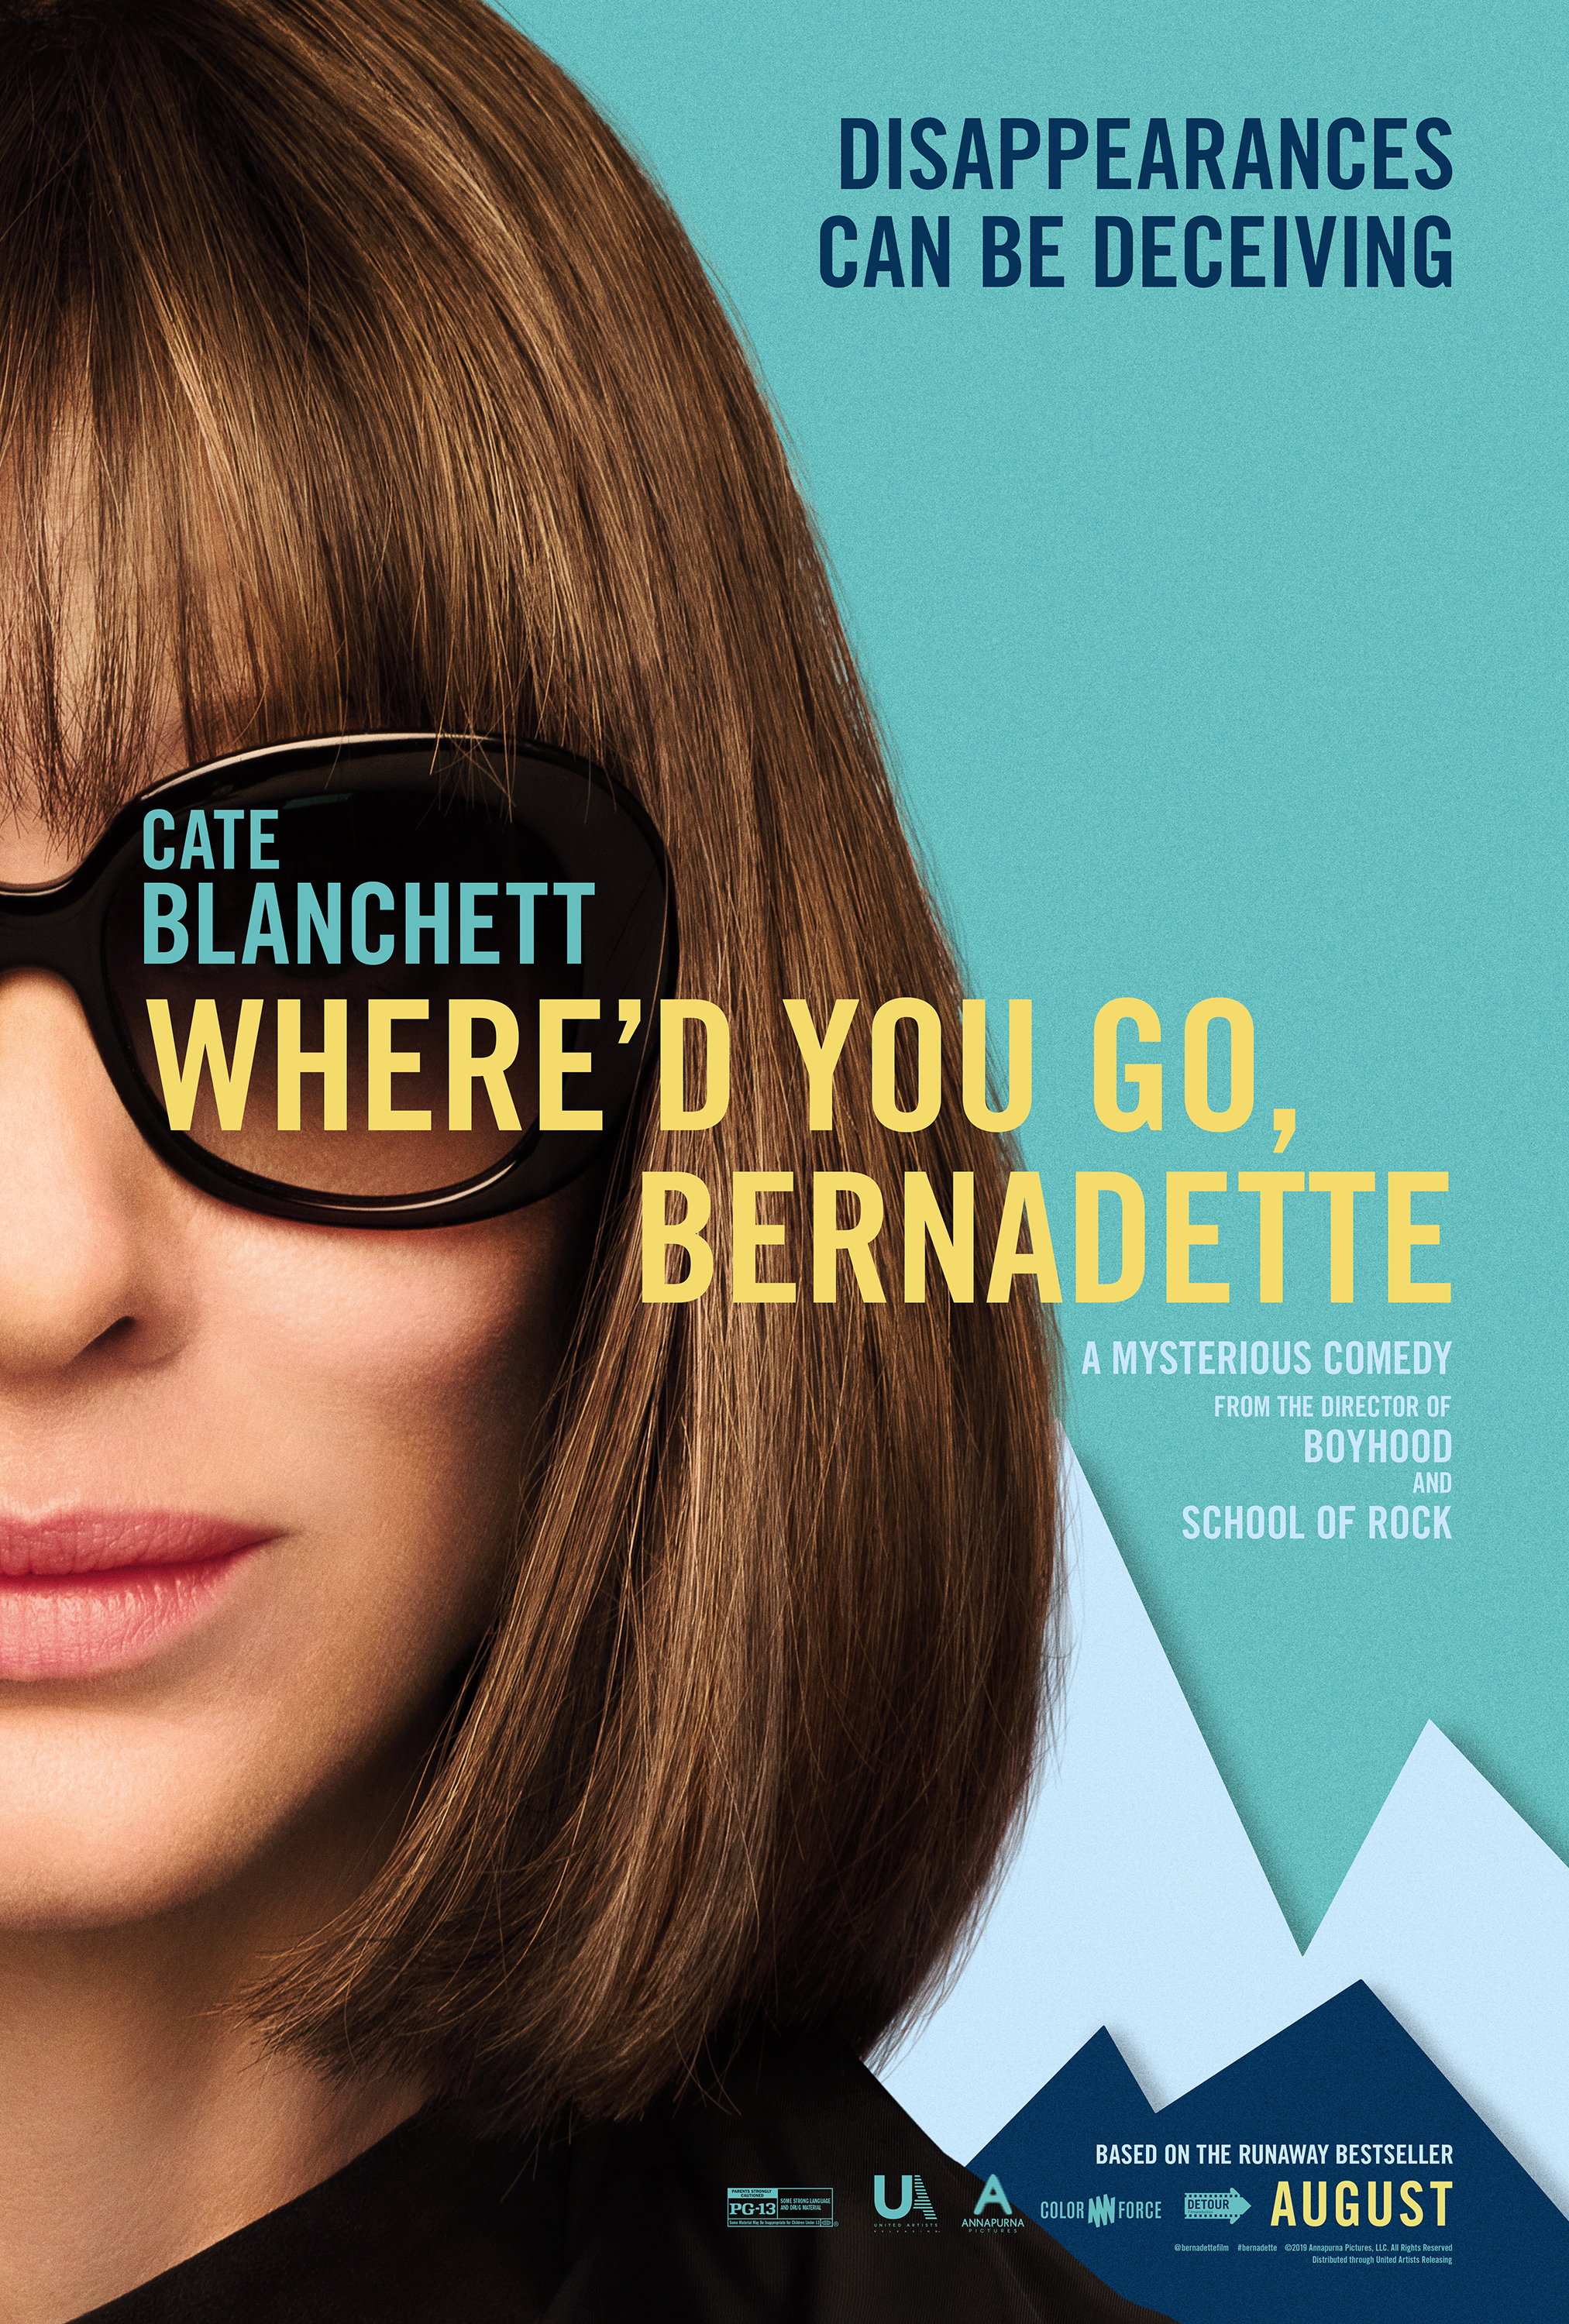 Movies @ Middletown: Where'd You Go Bernadette